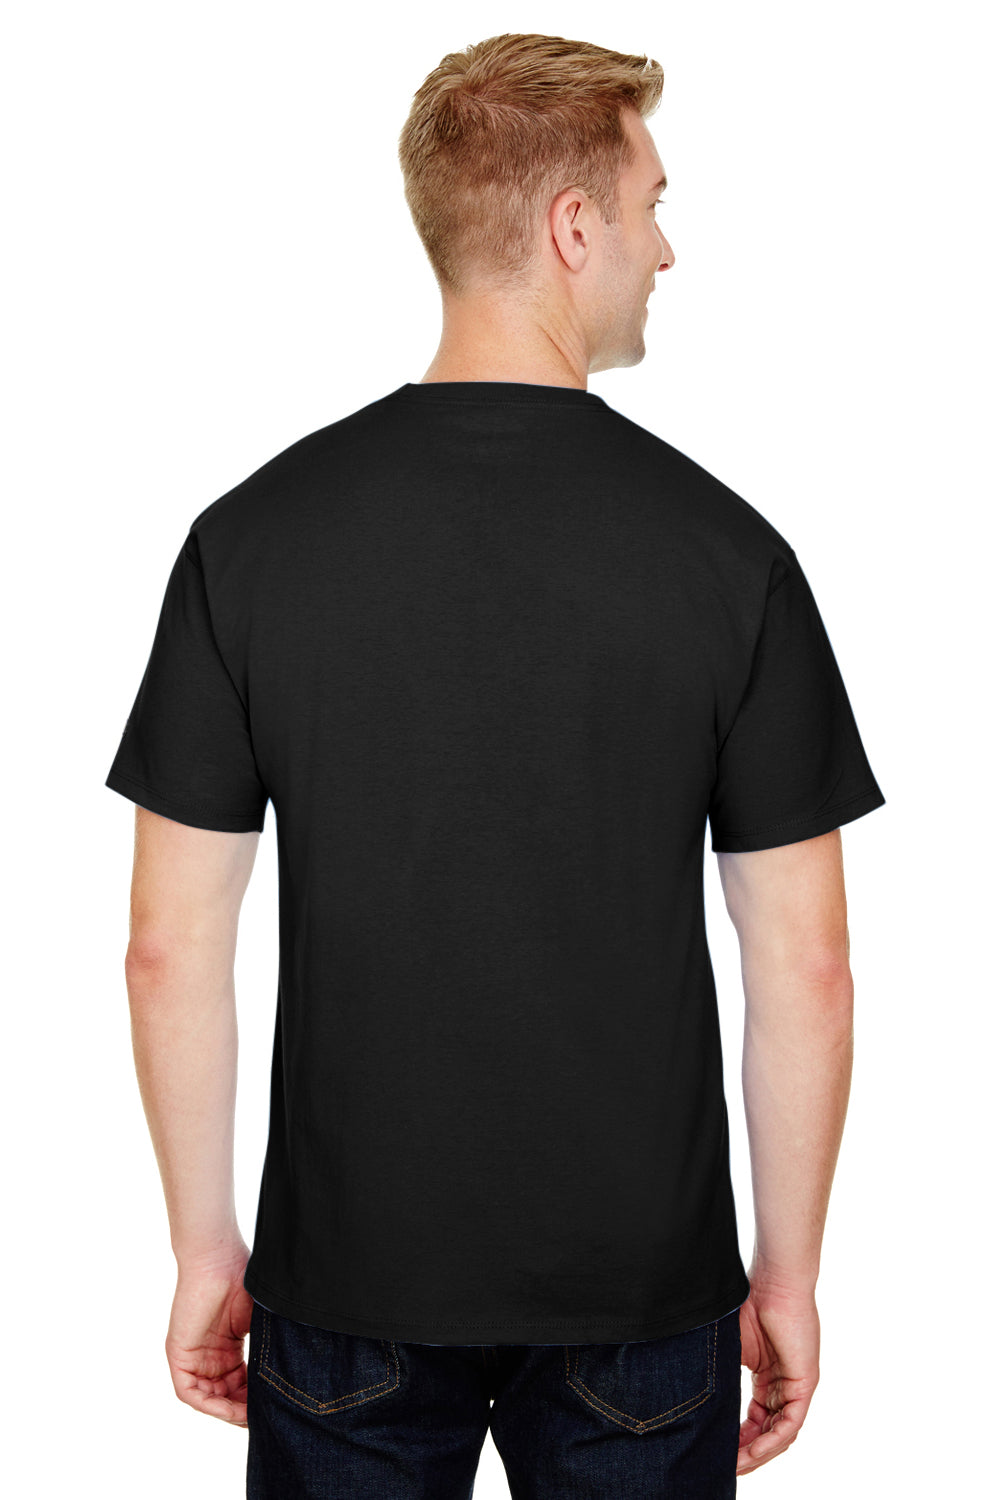 Champion CP10 Mens Short Sleeve Crewneck T-Shirt Black Back